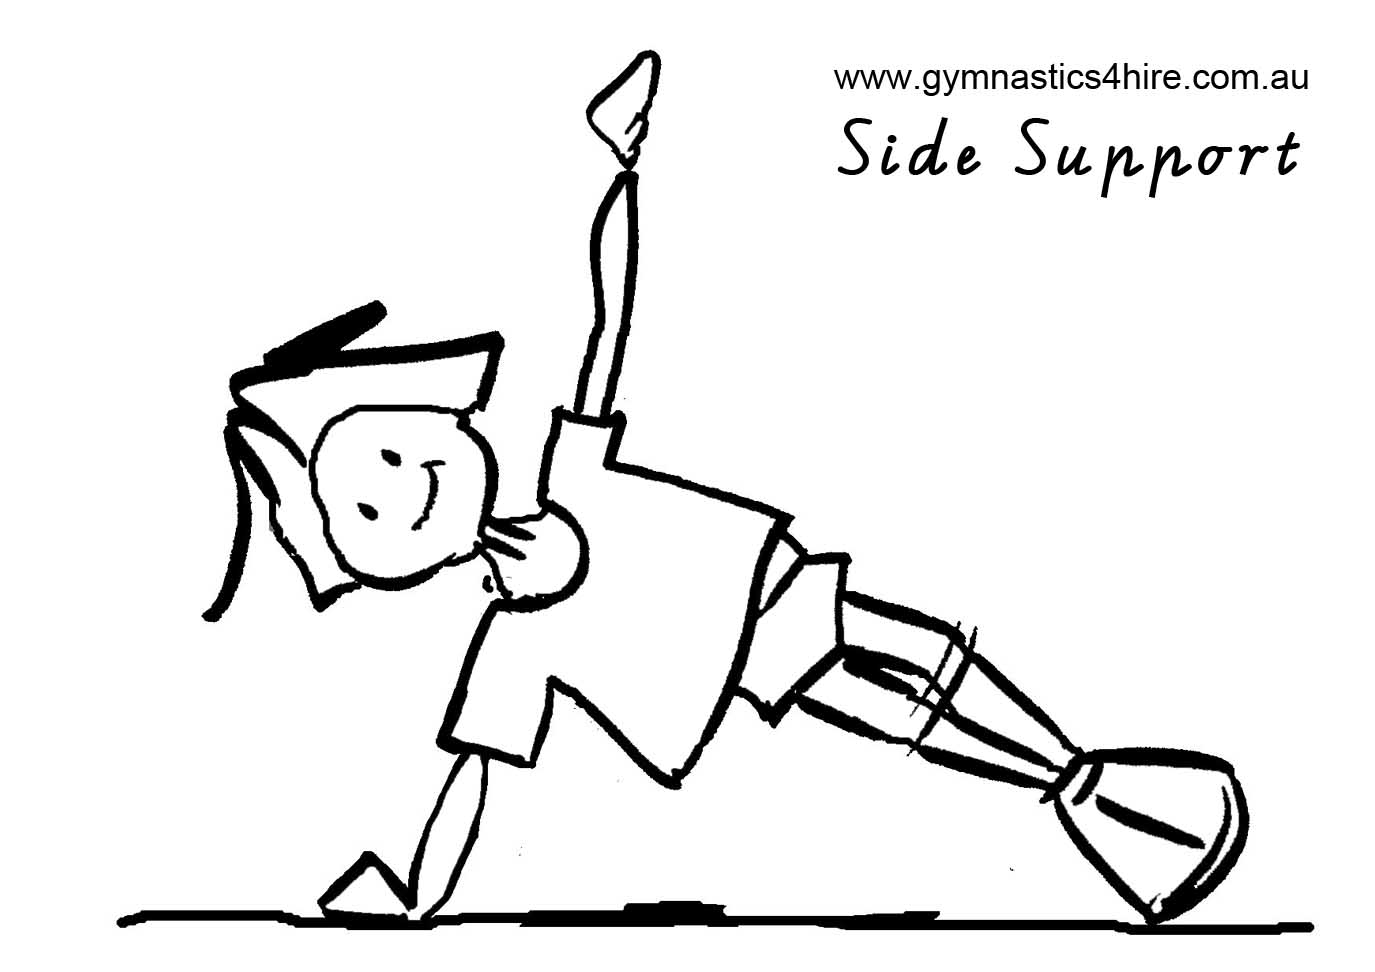 gymnastics colouring sheets gymnastics 4 hire